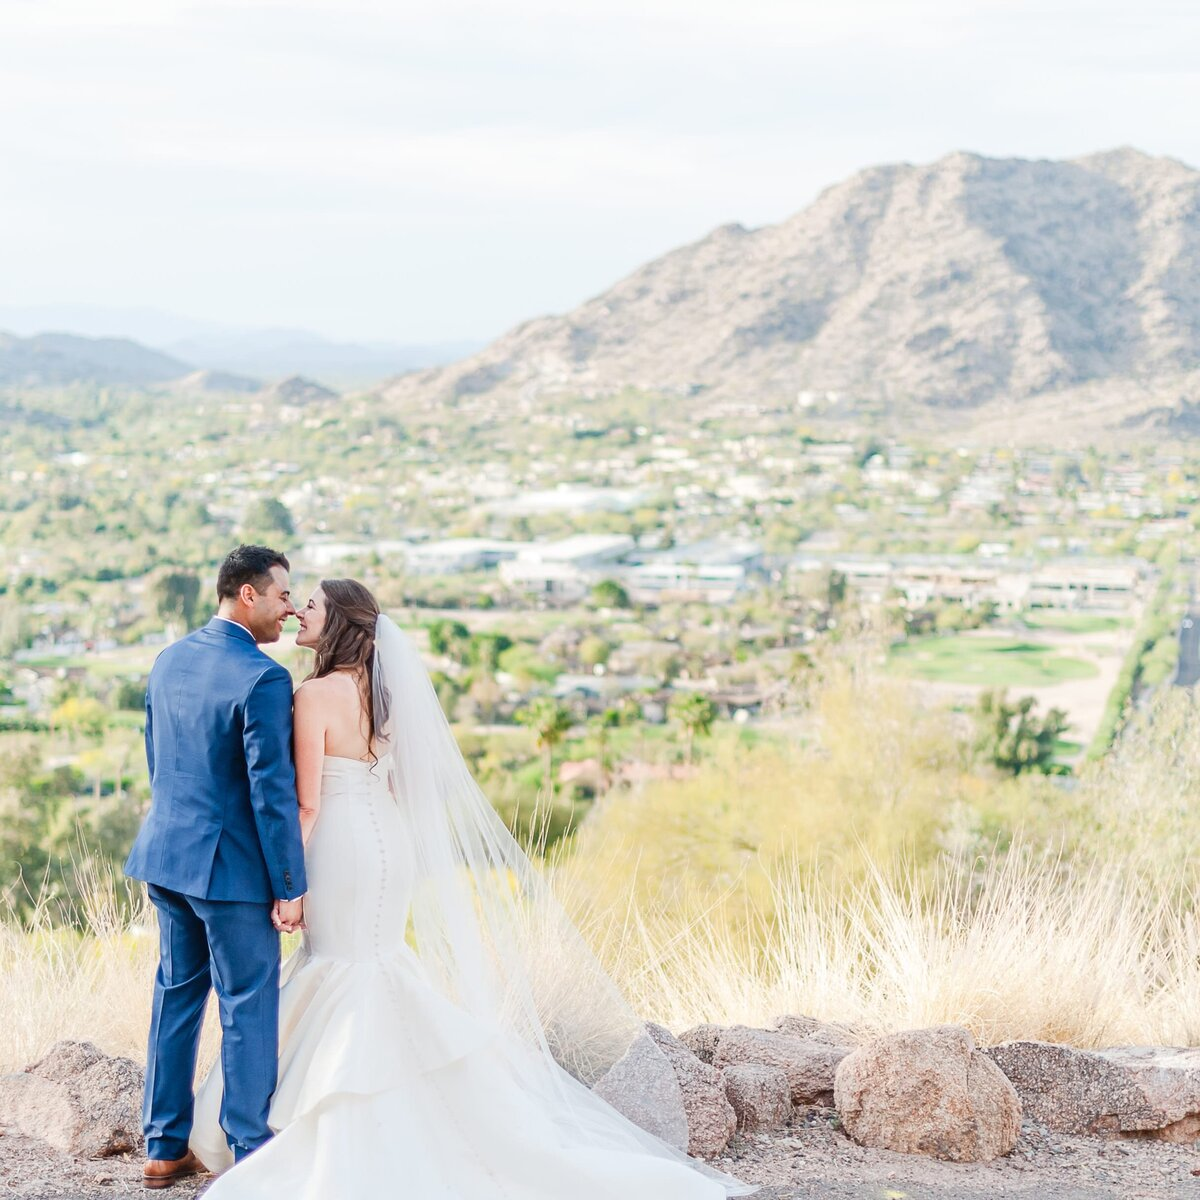 Sanctuary-on-Camelback-Wedding-by-Leslie-Ann-Photography-00054